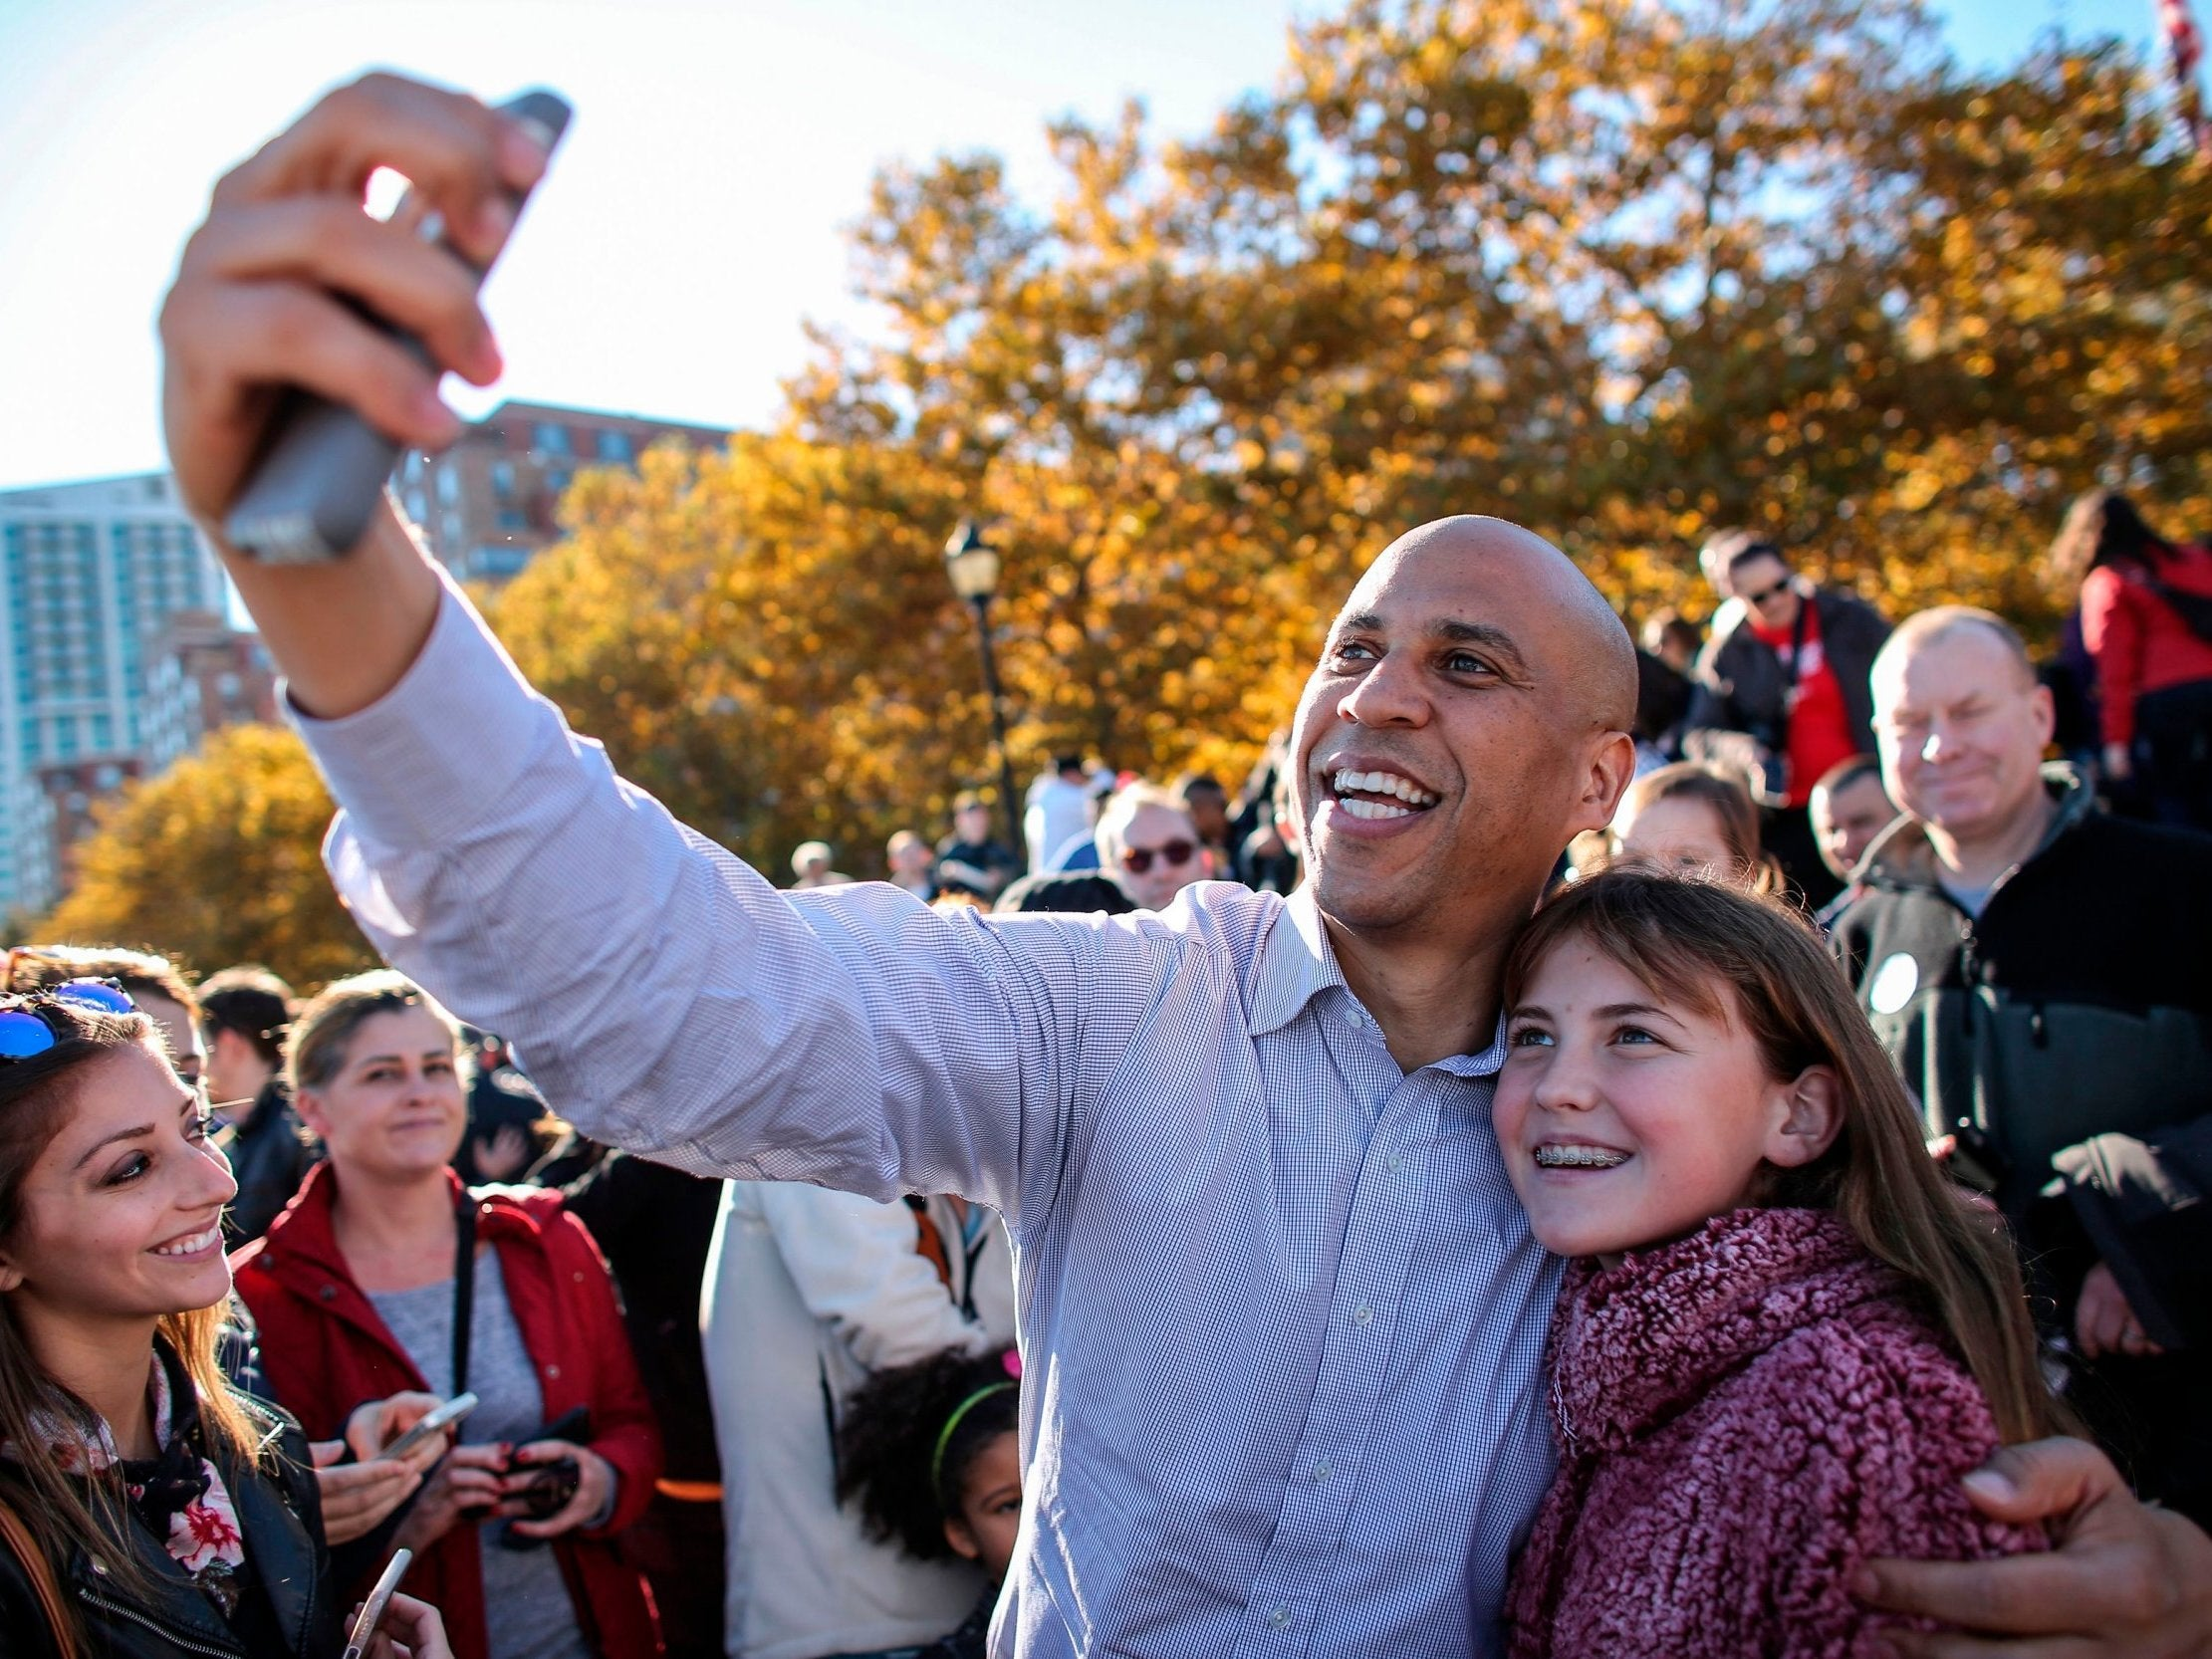 Trump: Cory Booker stands 'no chance' in 2020 presidential election